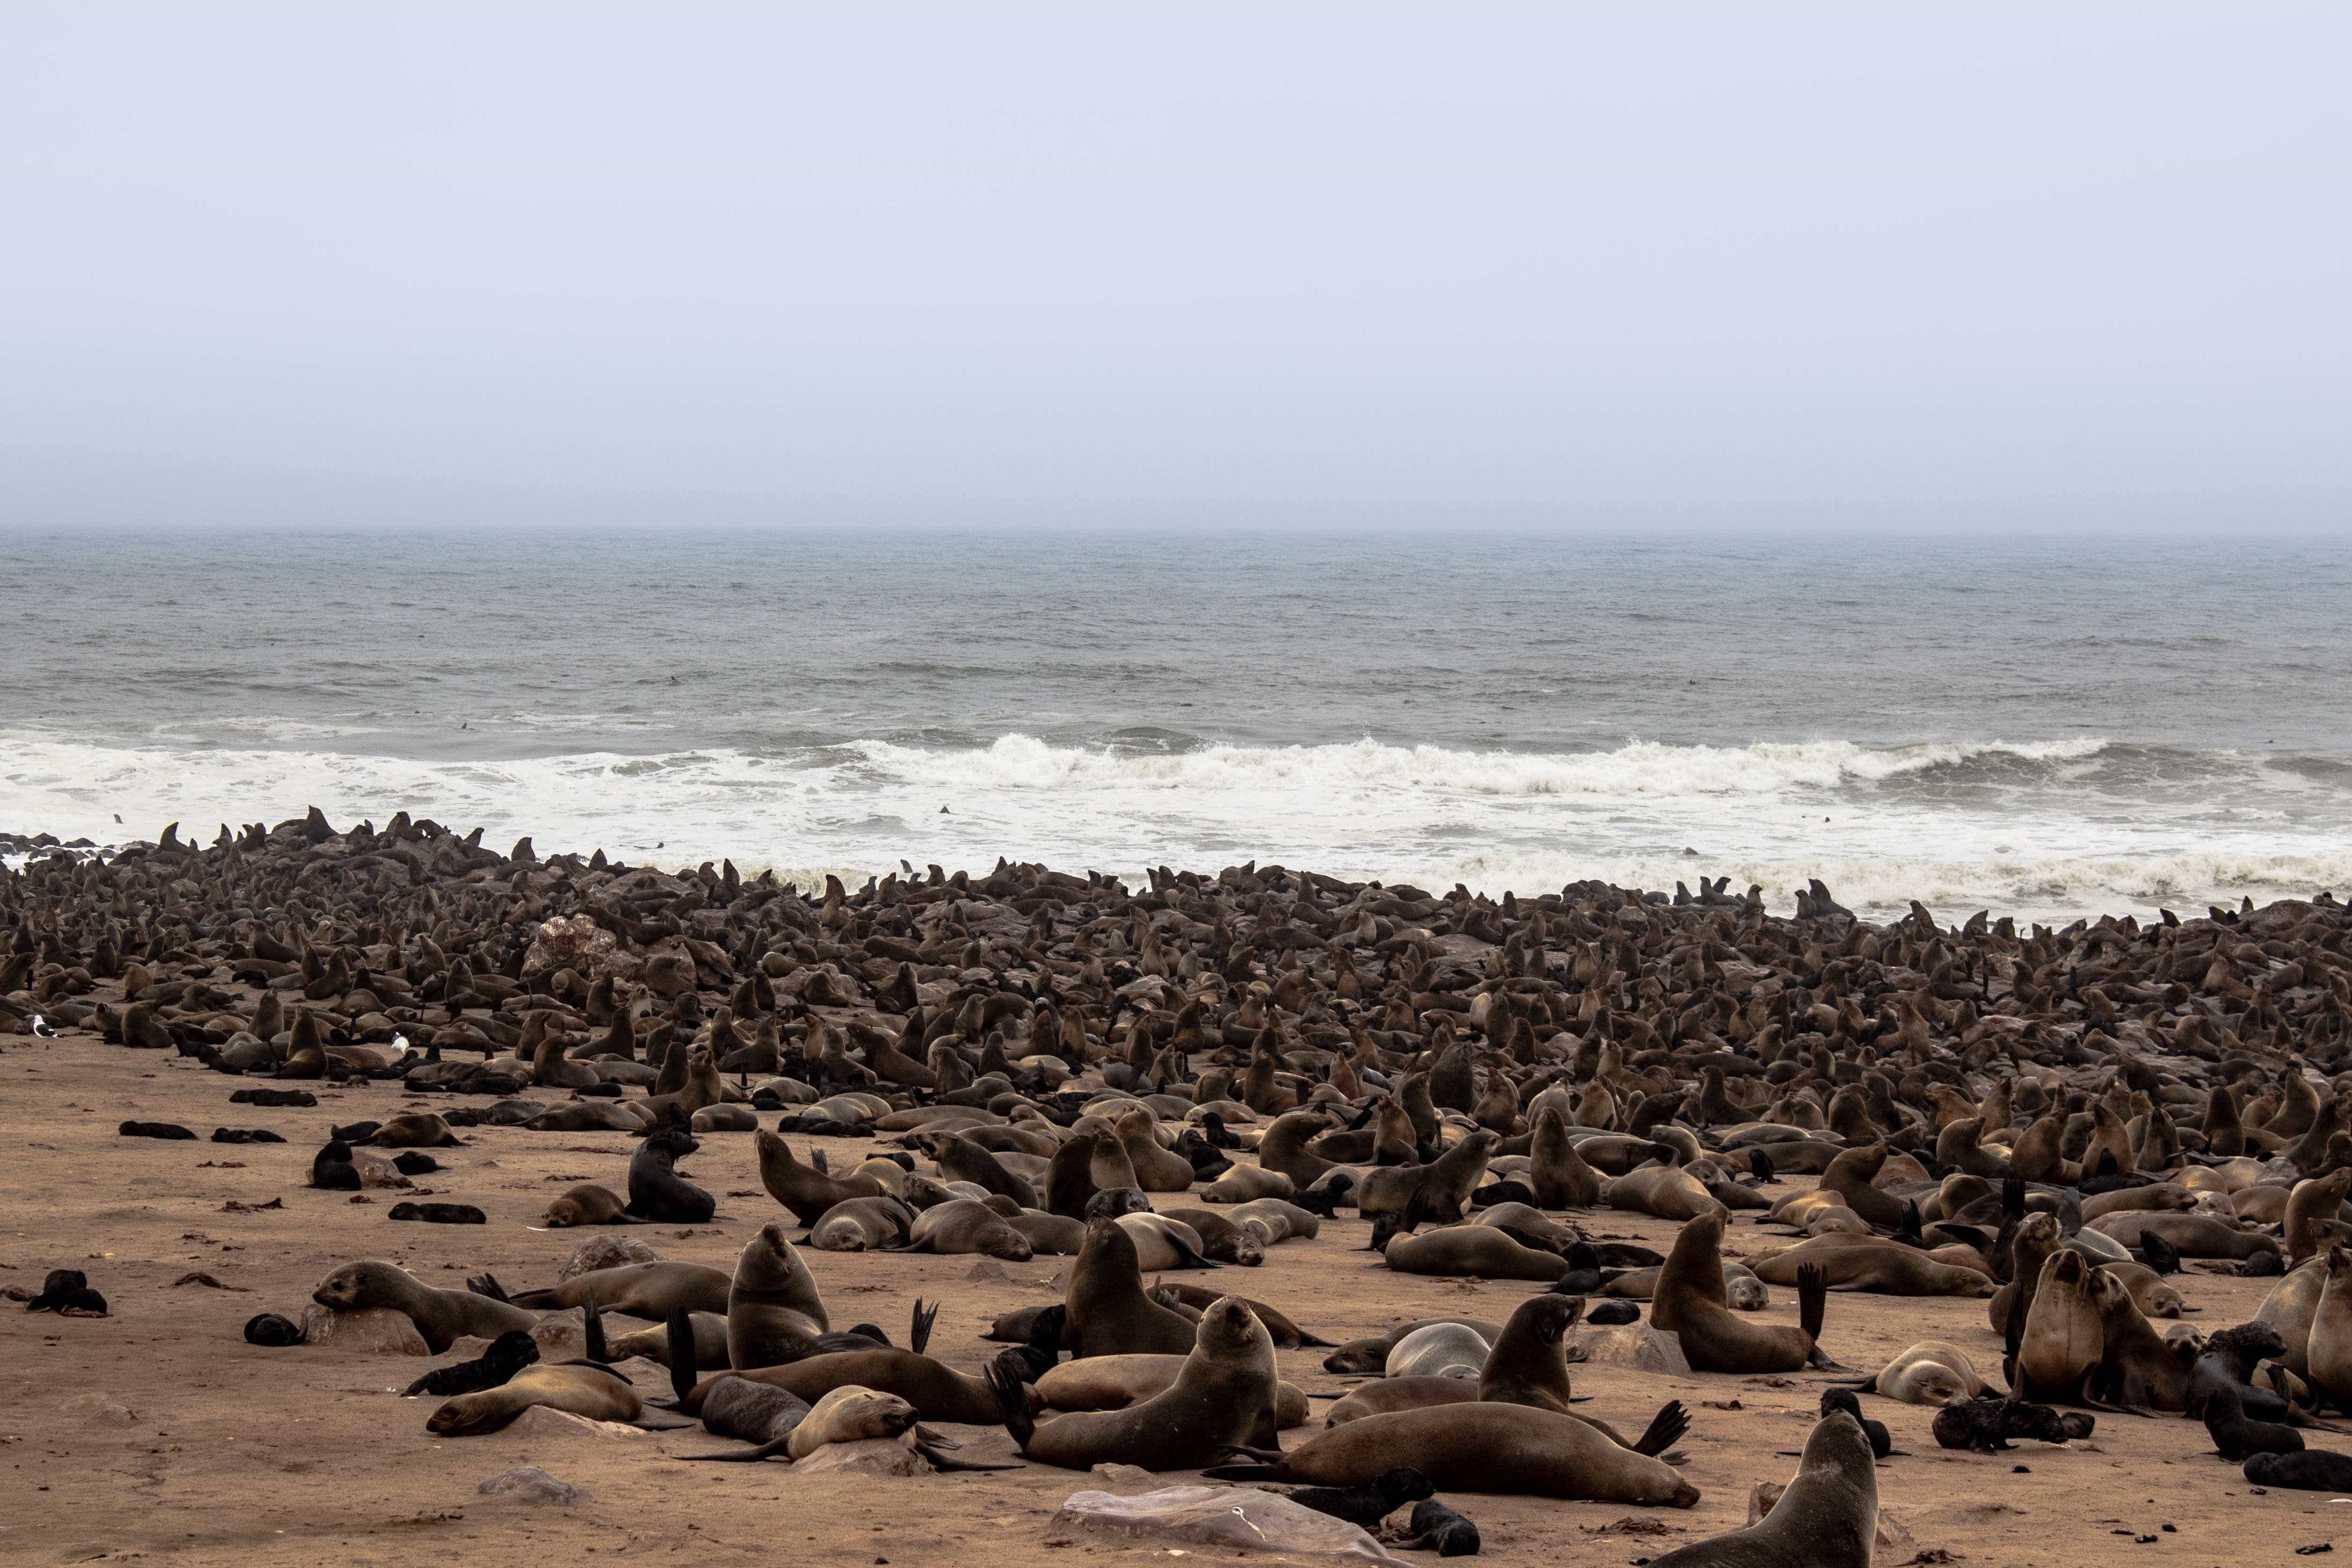 thousands of seals on the beach in namibia on an overcast day